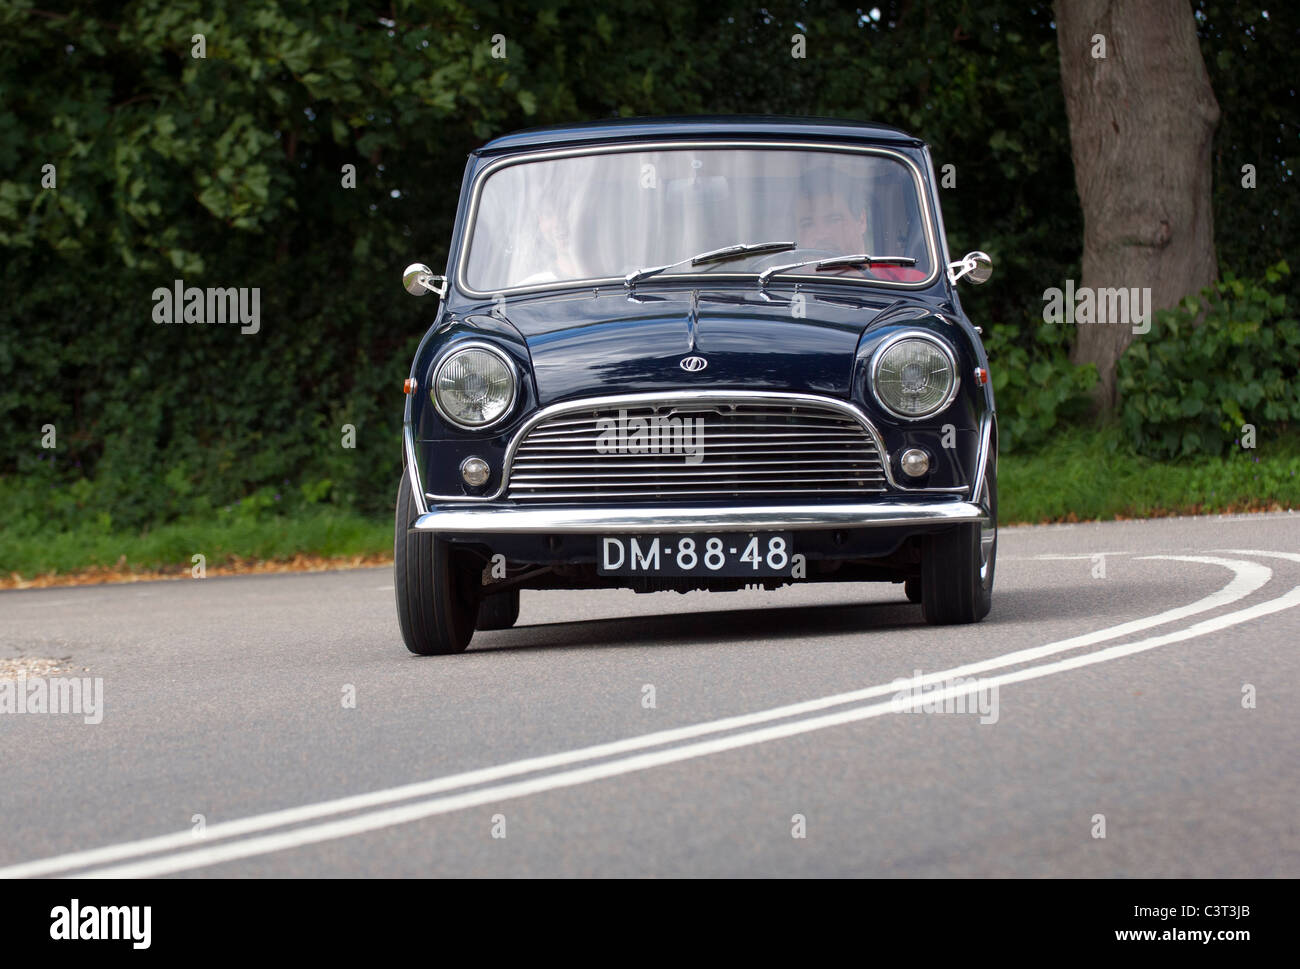 Mini Innocenti Italian Mini small car - Stock Image